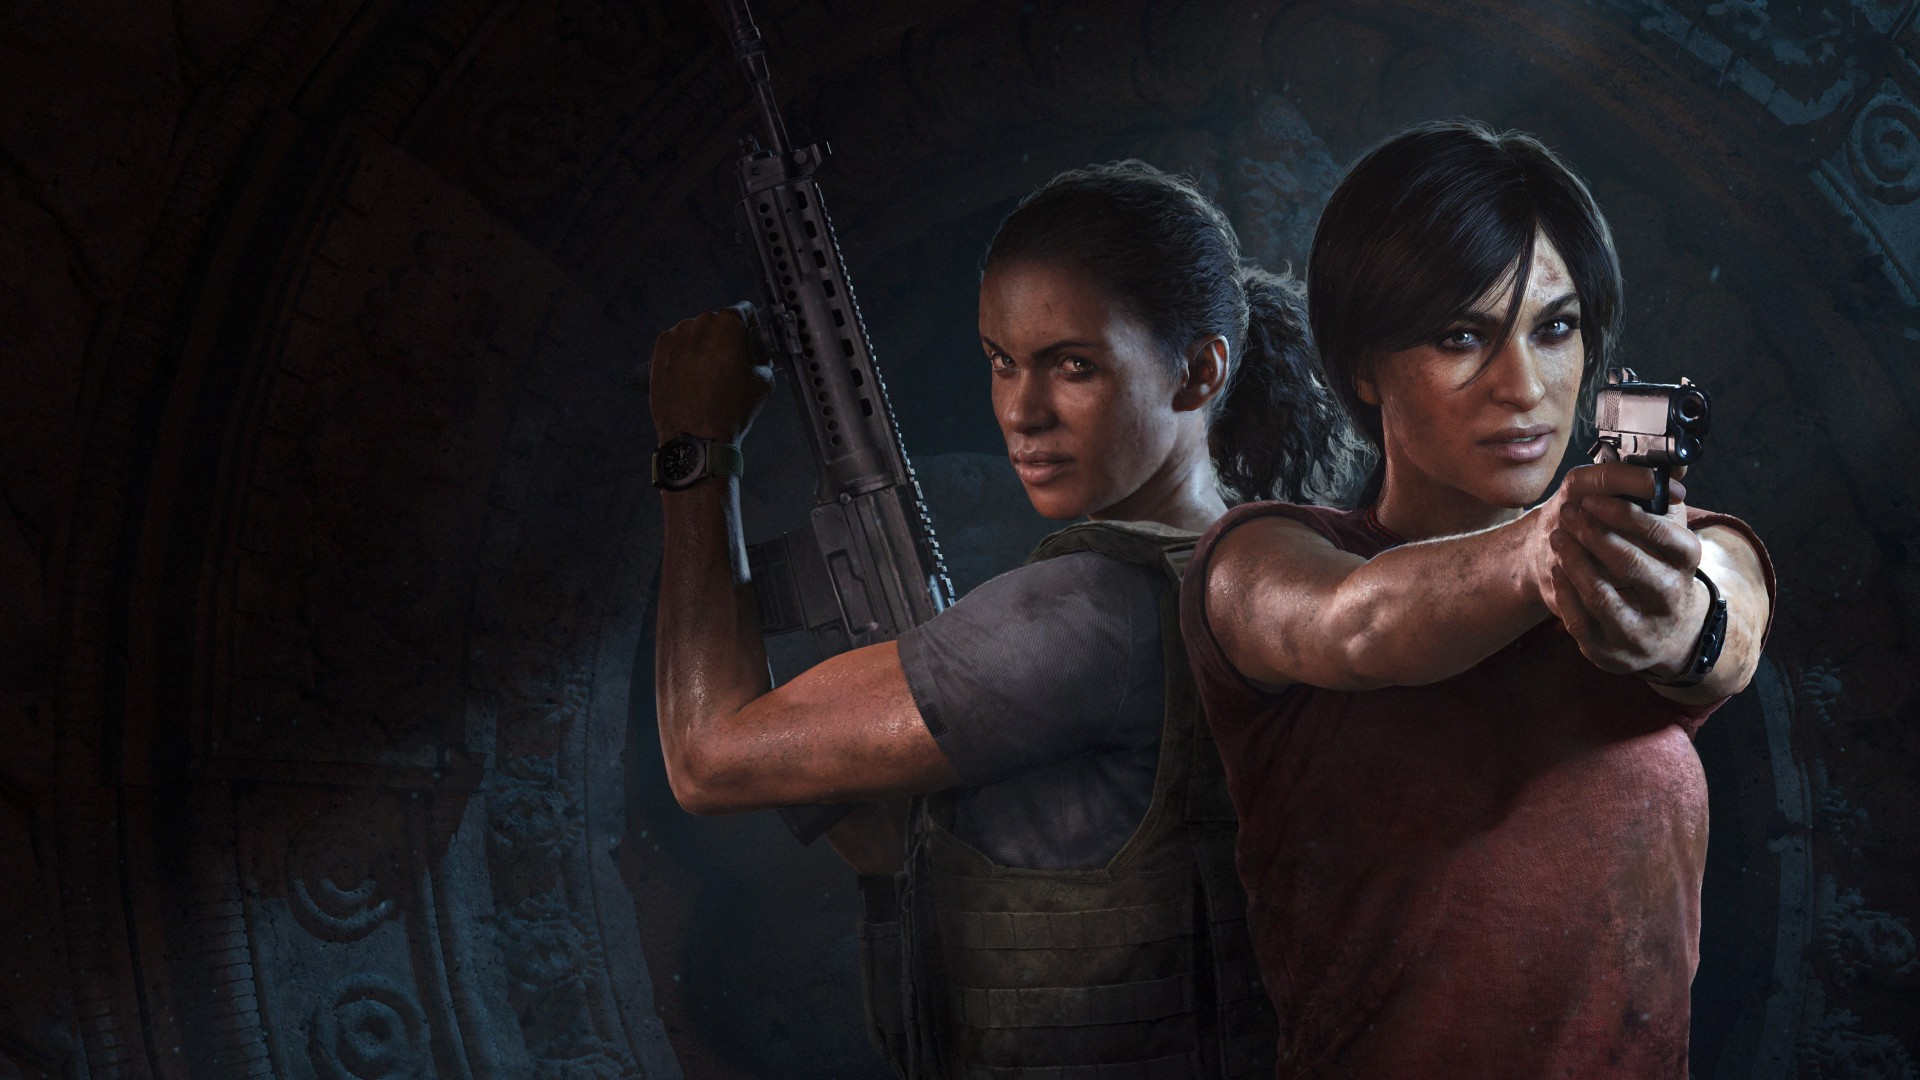 Uncharted May Not Be Done After Lost Legacy, Says Naughty Dog